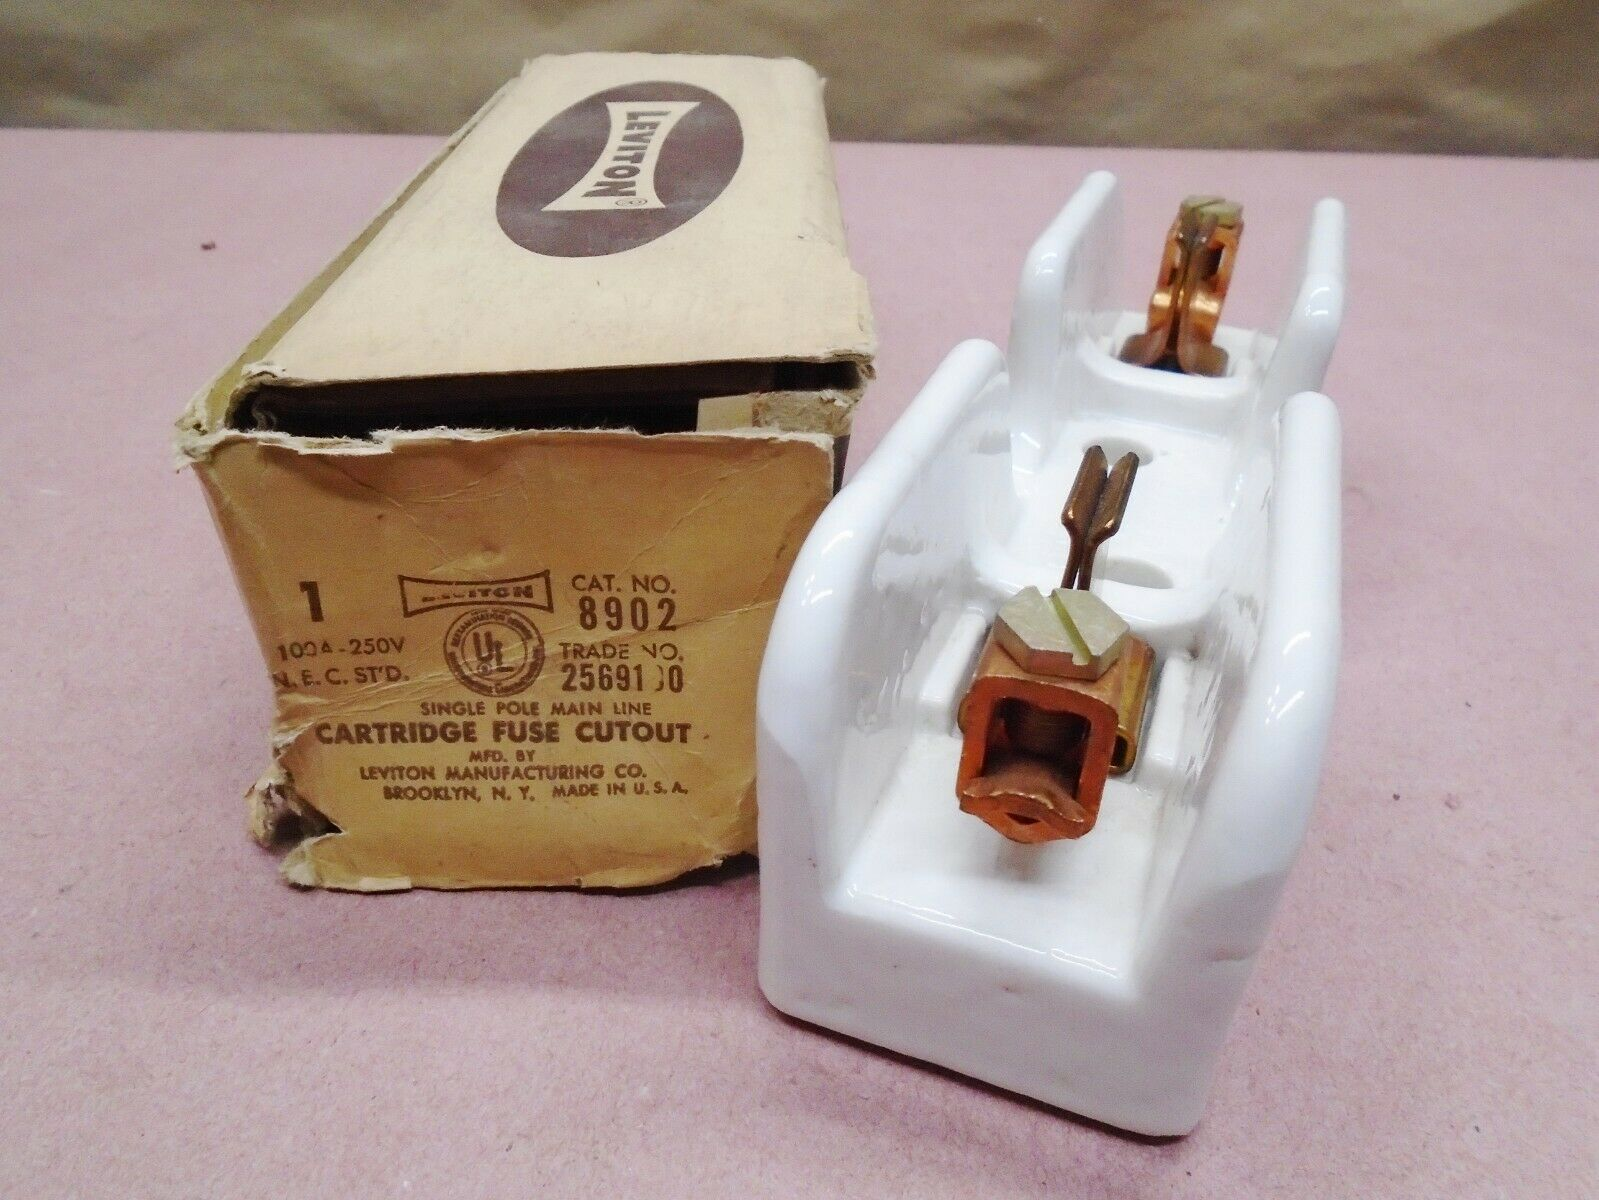 NEW Vintage Leviton 8902 Fuse Holder 61-100 Amp 250 Volt Ceramic/Porcelain  for sale onlineeBay